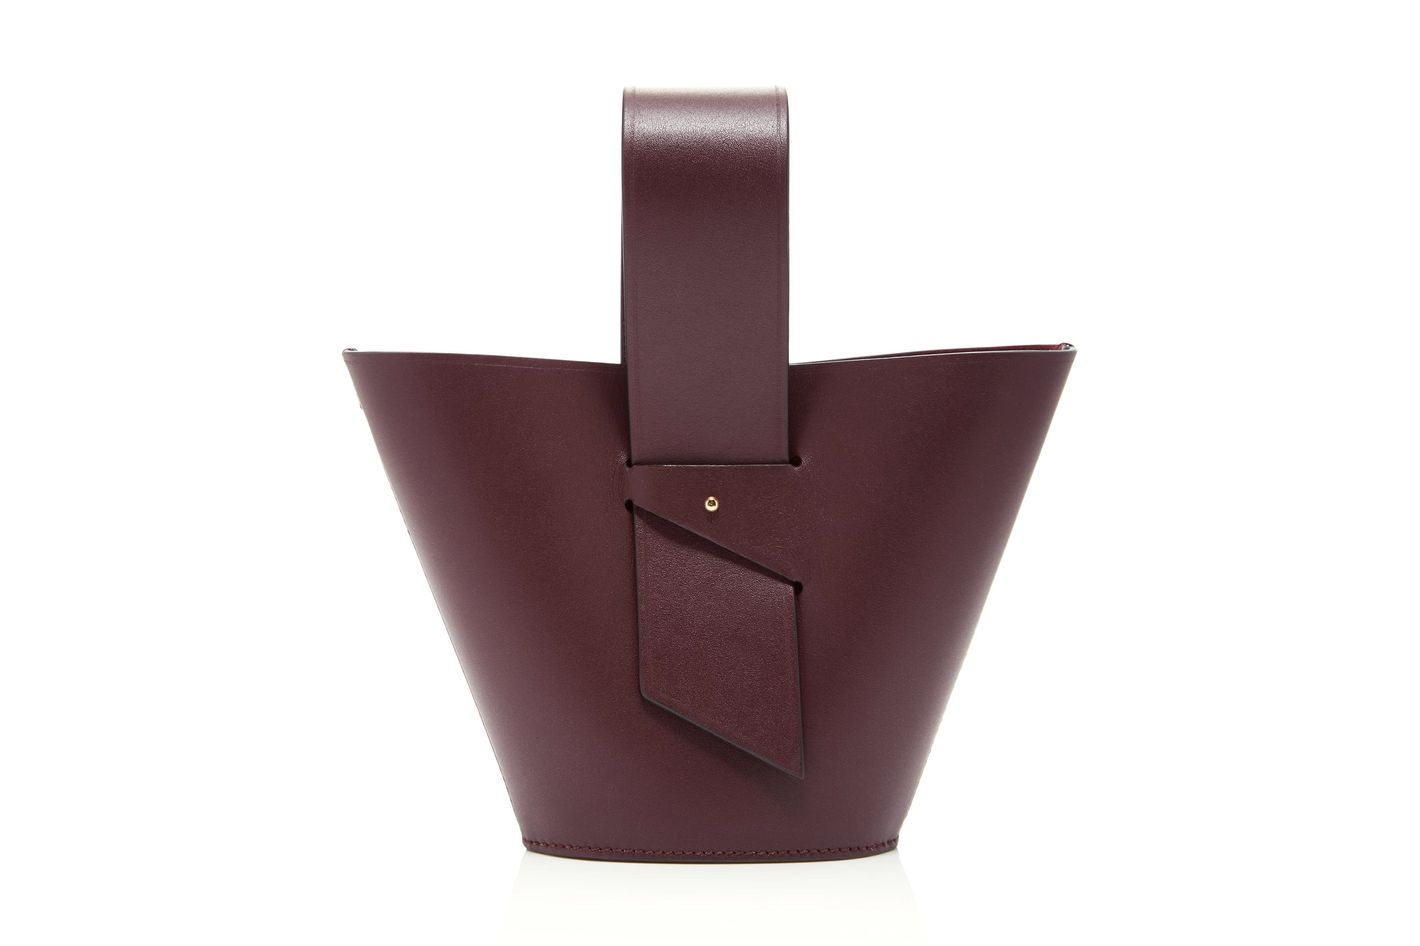 Carolina Santo Domingo Amphora Mini Top Handle Bag